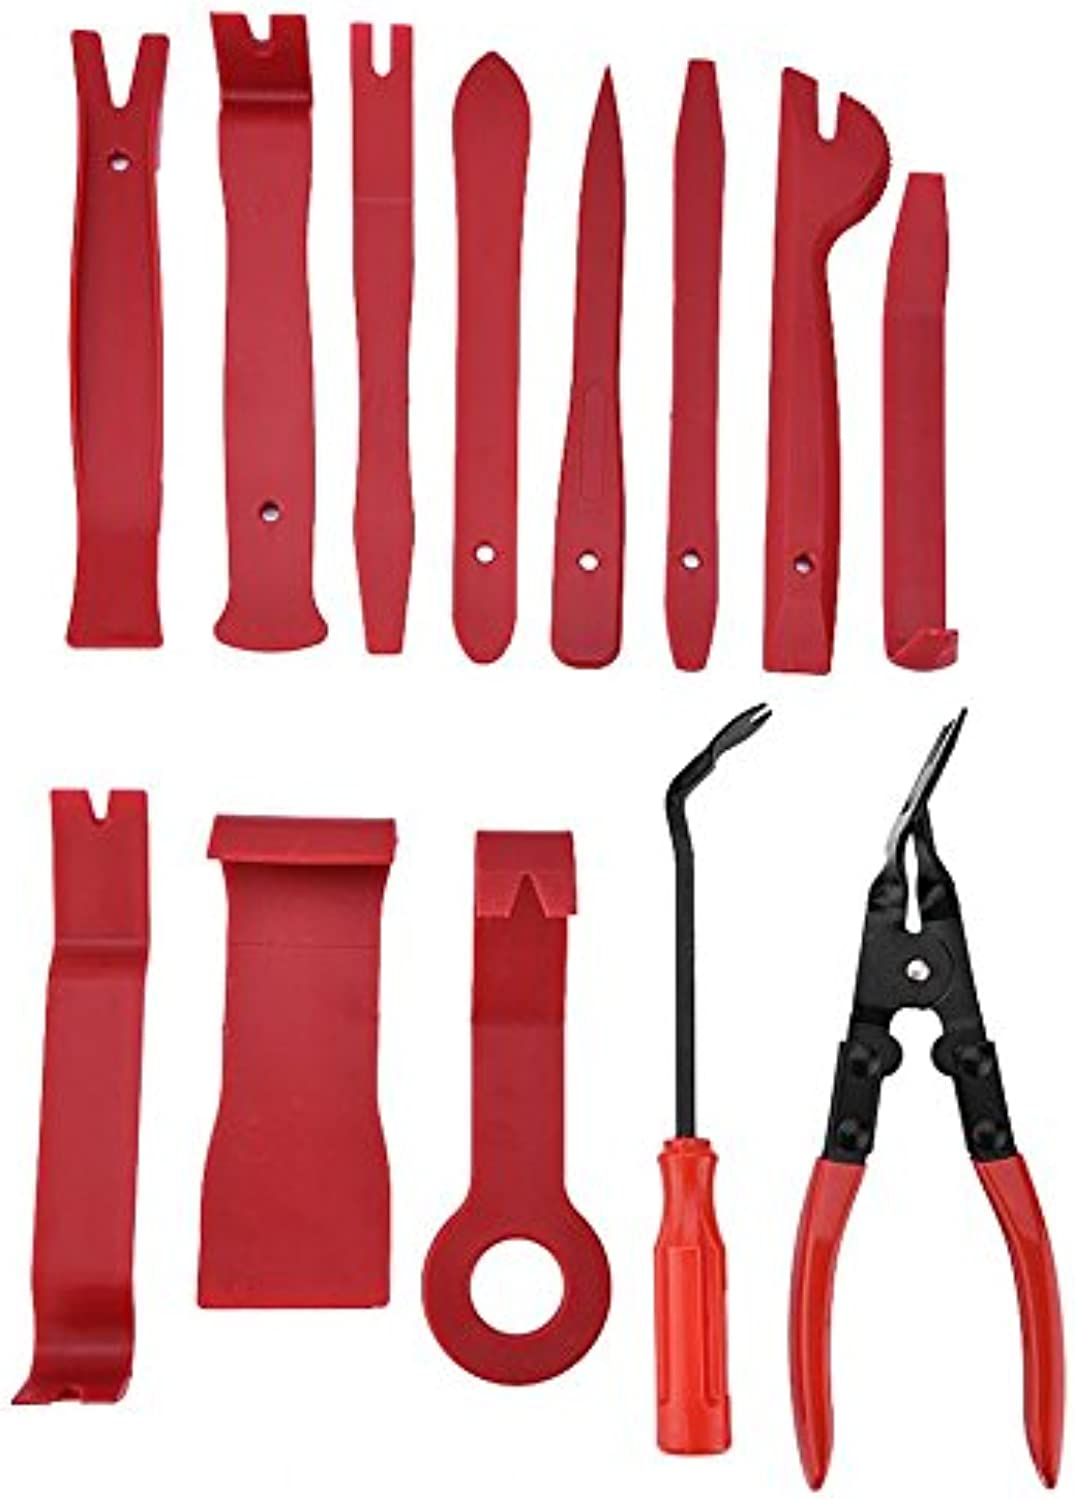 Hand Tool Sets  13pcs Car Door Panel Trim Removal Tool Dashboard Clip Puller Pliers Fastener Kit  Shaft Ready Solidifying Puppet Arranged Peter Mark Rigid Nonmoving Drive